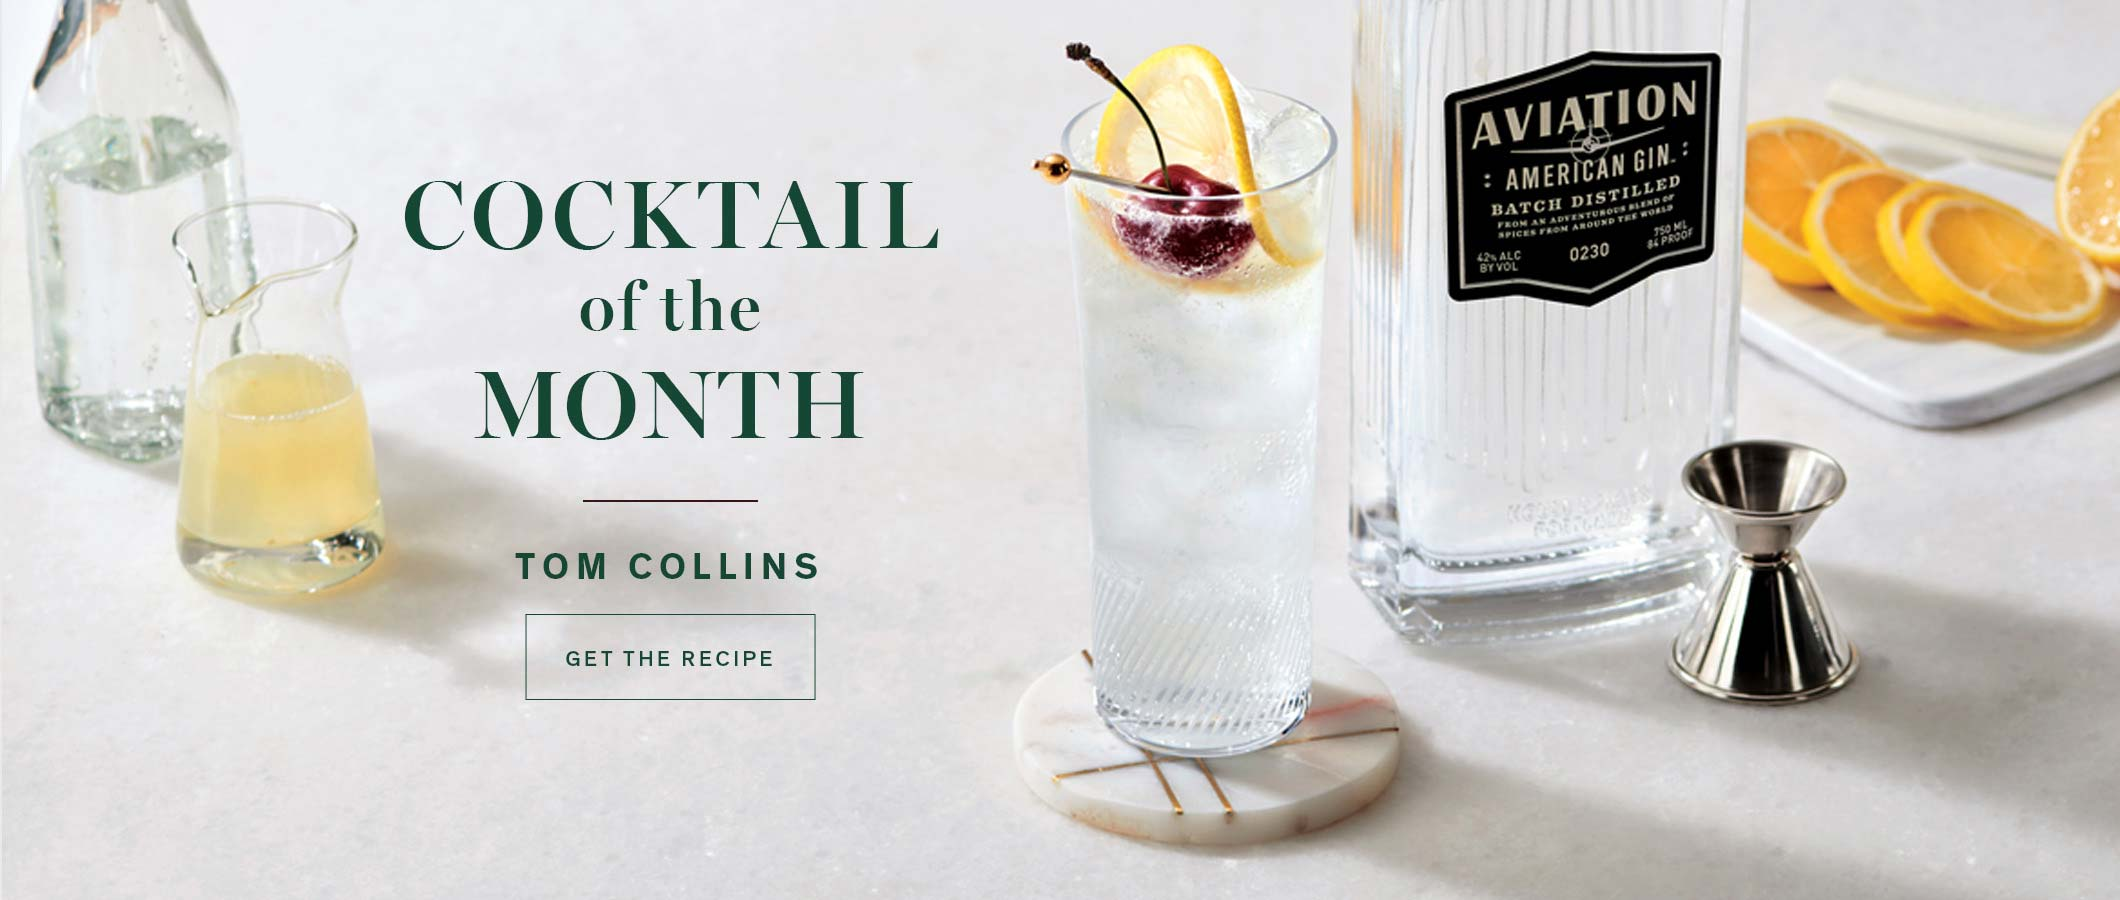 Cocktail of the Month  Tom Collins.  GET THE RECIPE